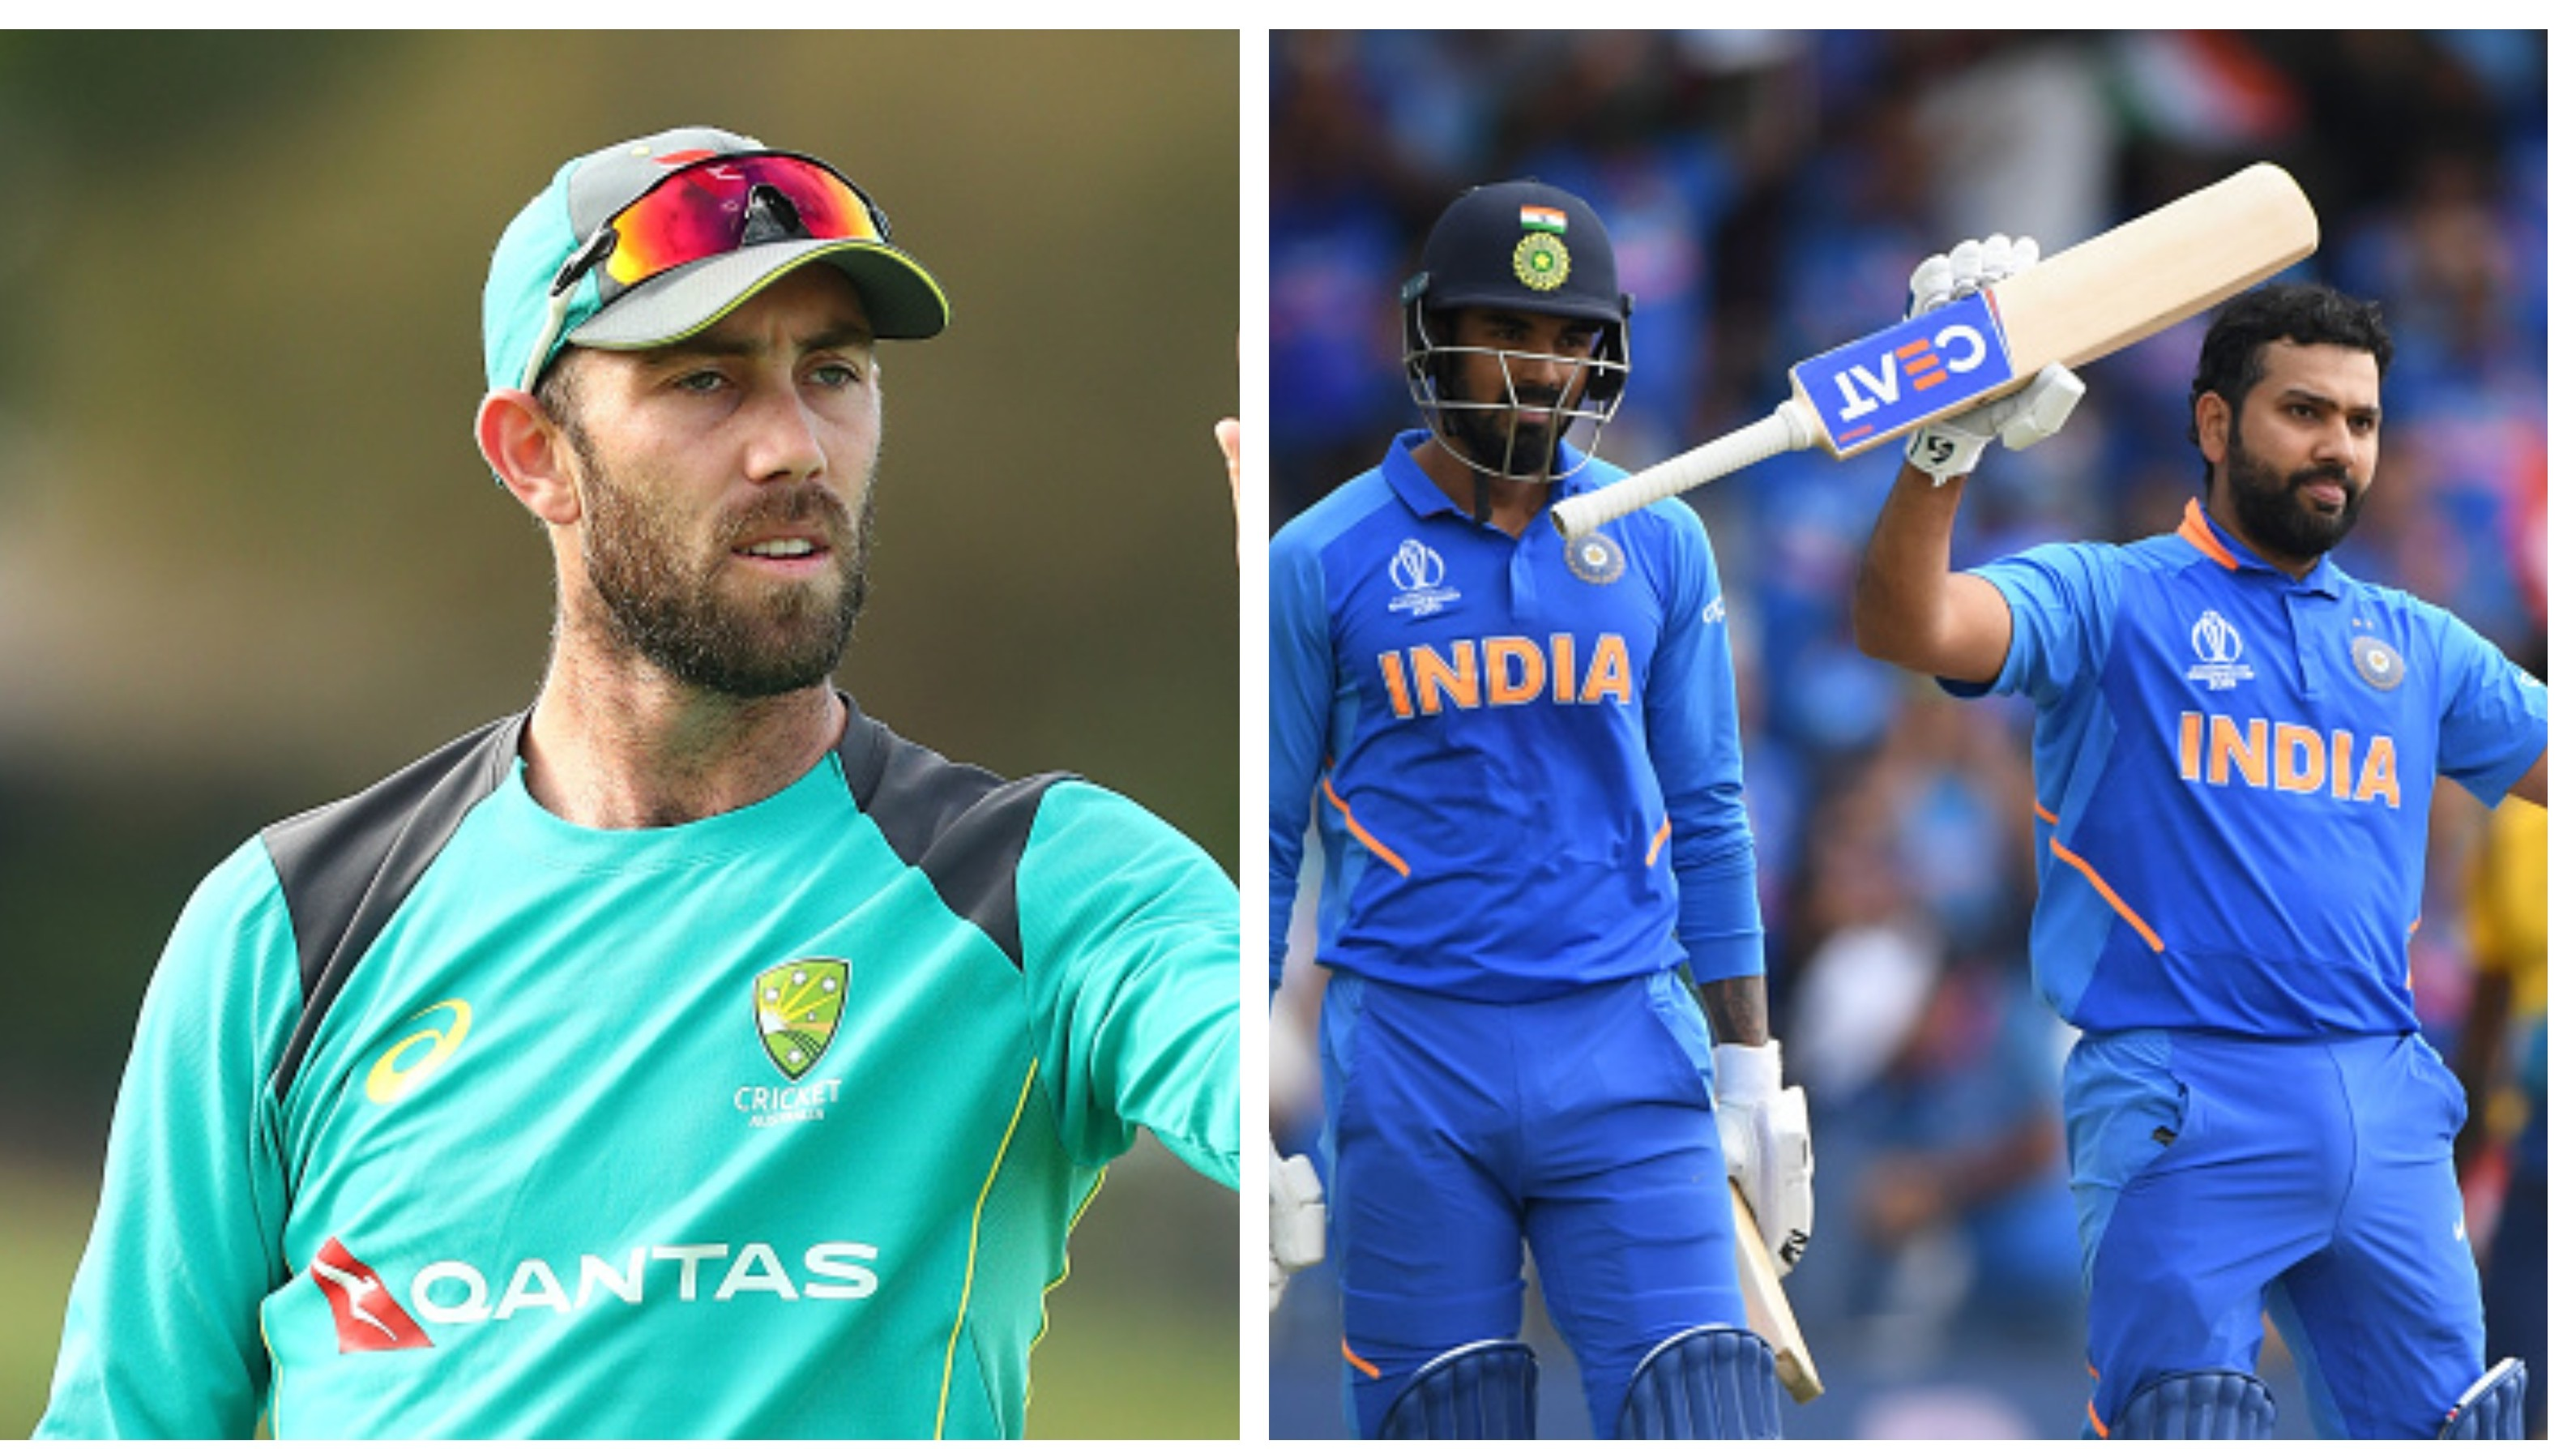 AUS v IND 2020-21: Rohit's absence a